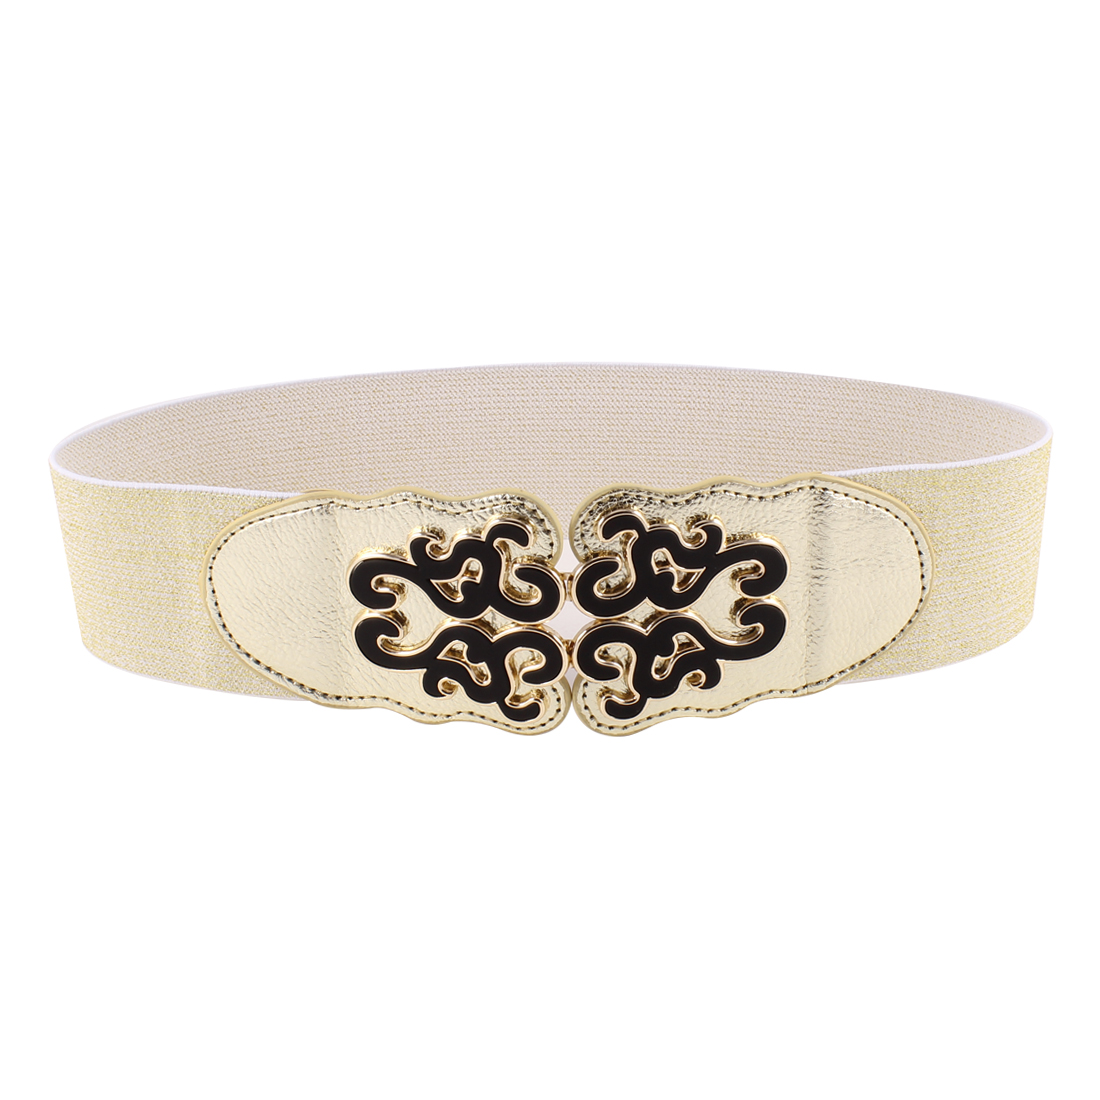 Women Faux Leather Ethnic Floral Ornament Interlock Buckle Stretchy Belt Gold Tone